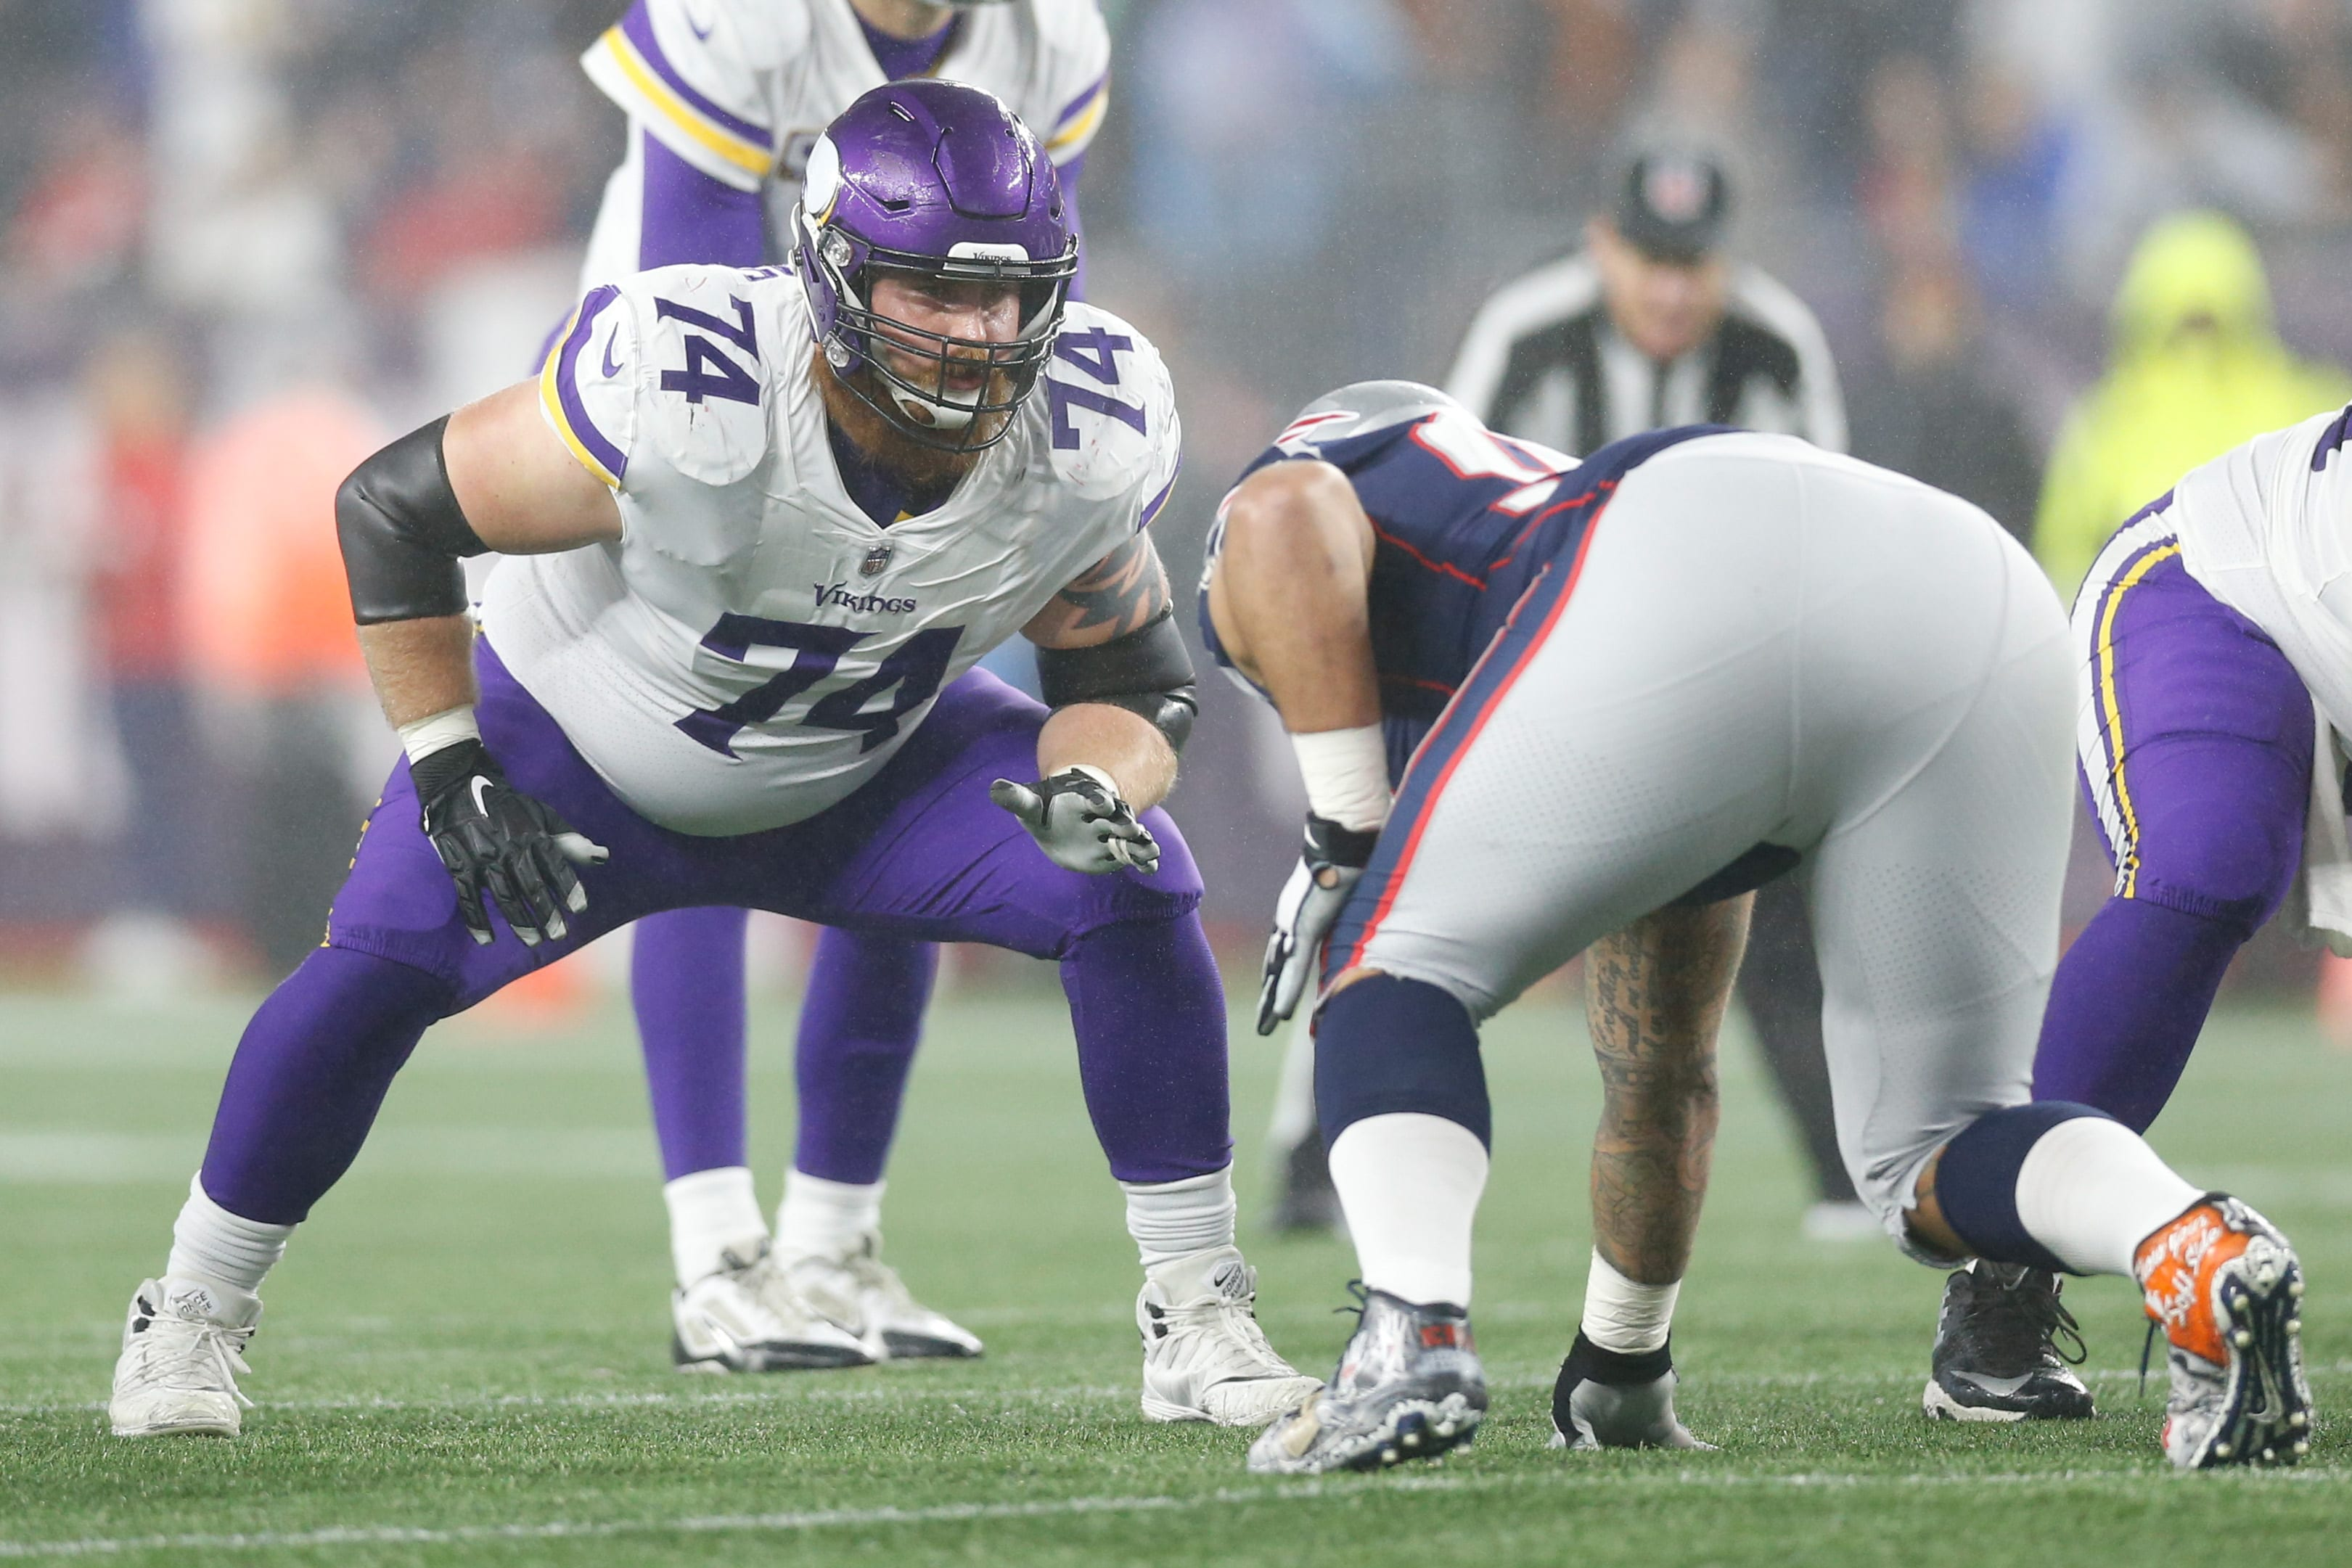 New York Giants, Mike Remmers, Minnesota Vikings